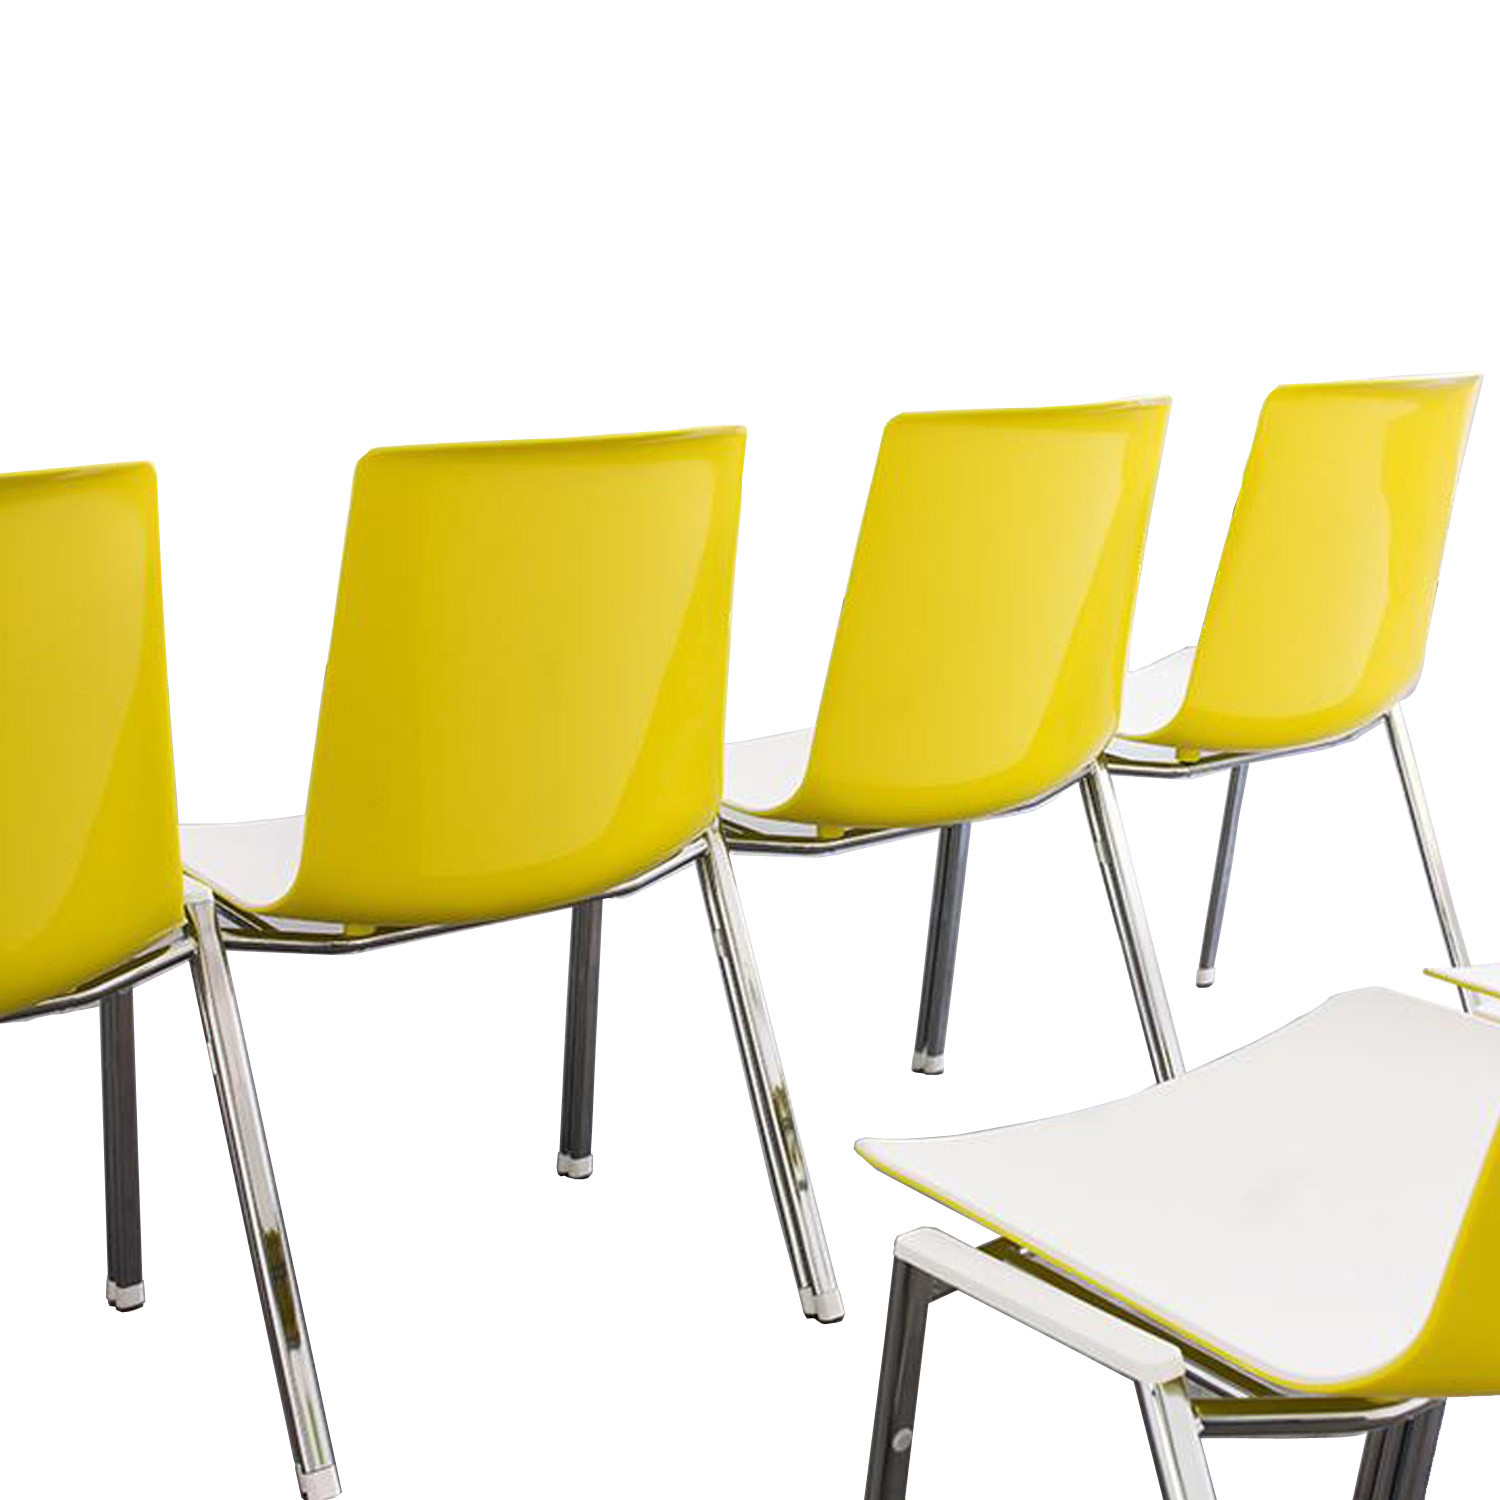 Nooi Linkable Chairs